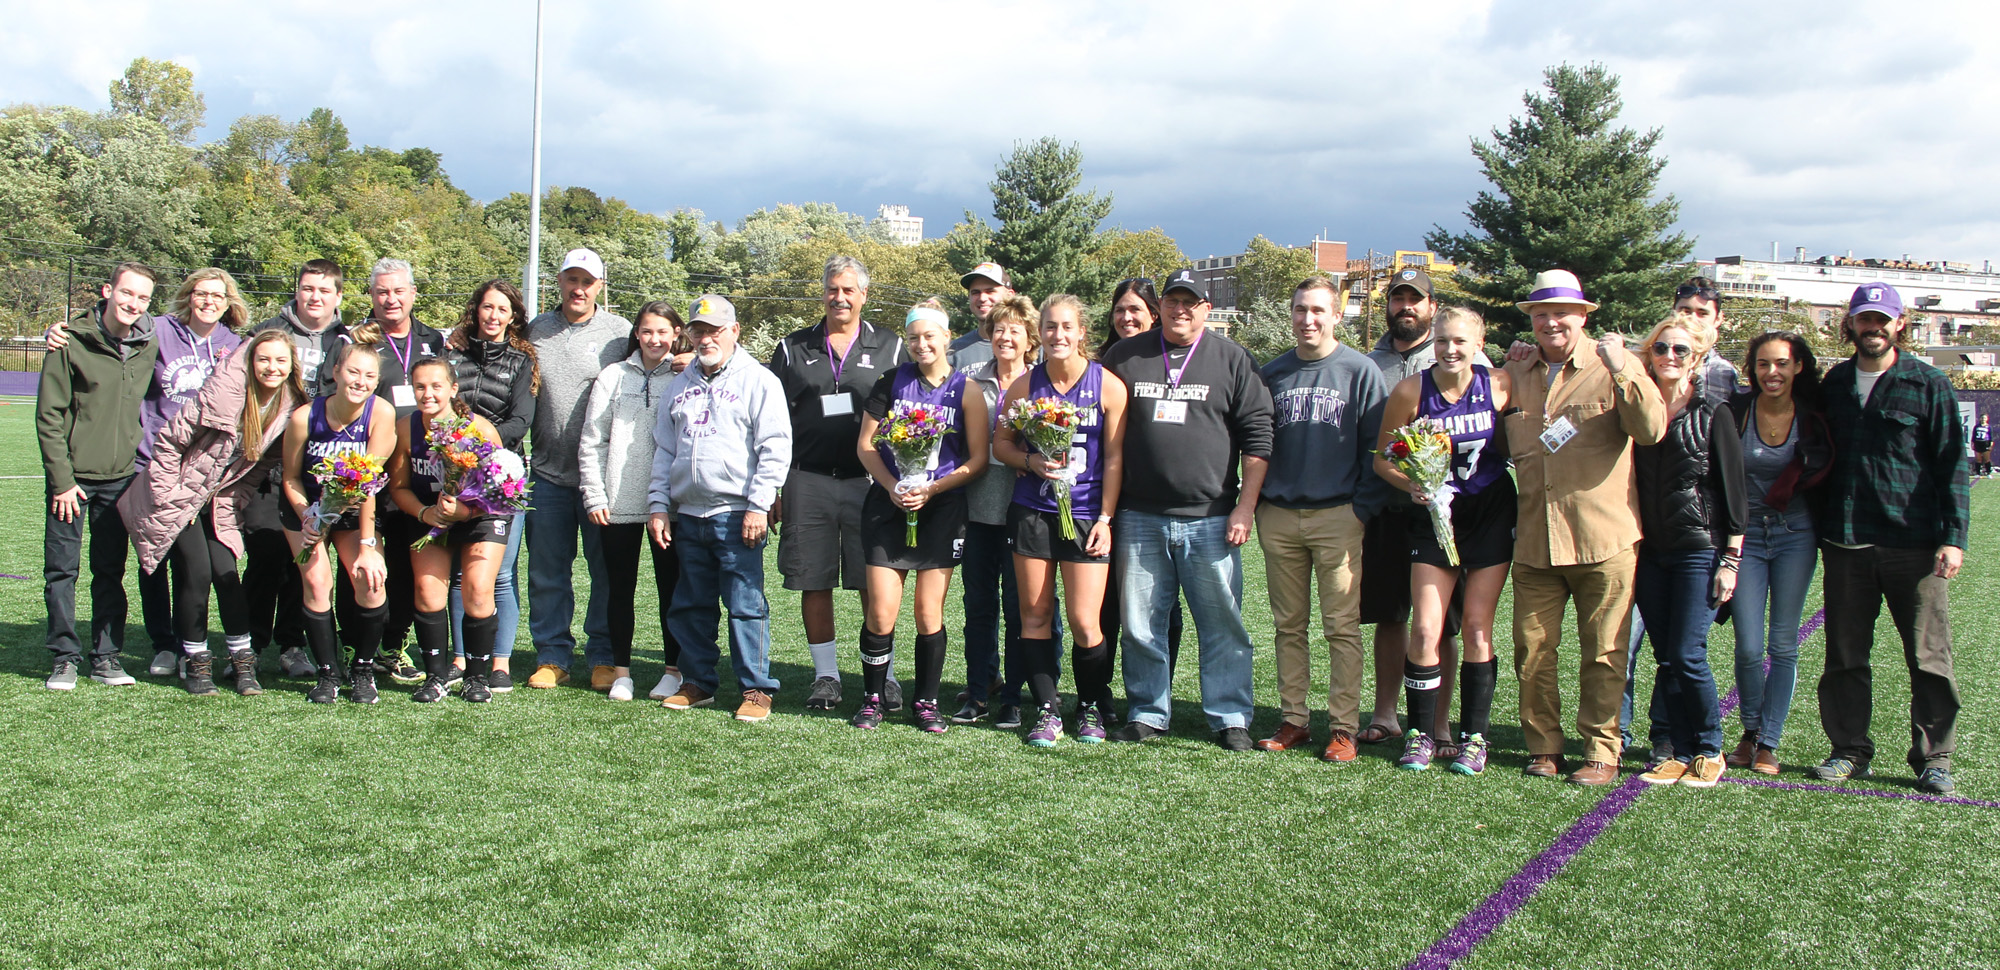 The field hockey team celebrated Senior Day with a key 3-2 win over Susquehanna on Saturday at Weiss Field.